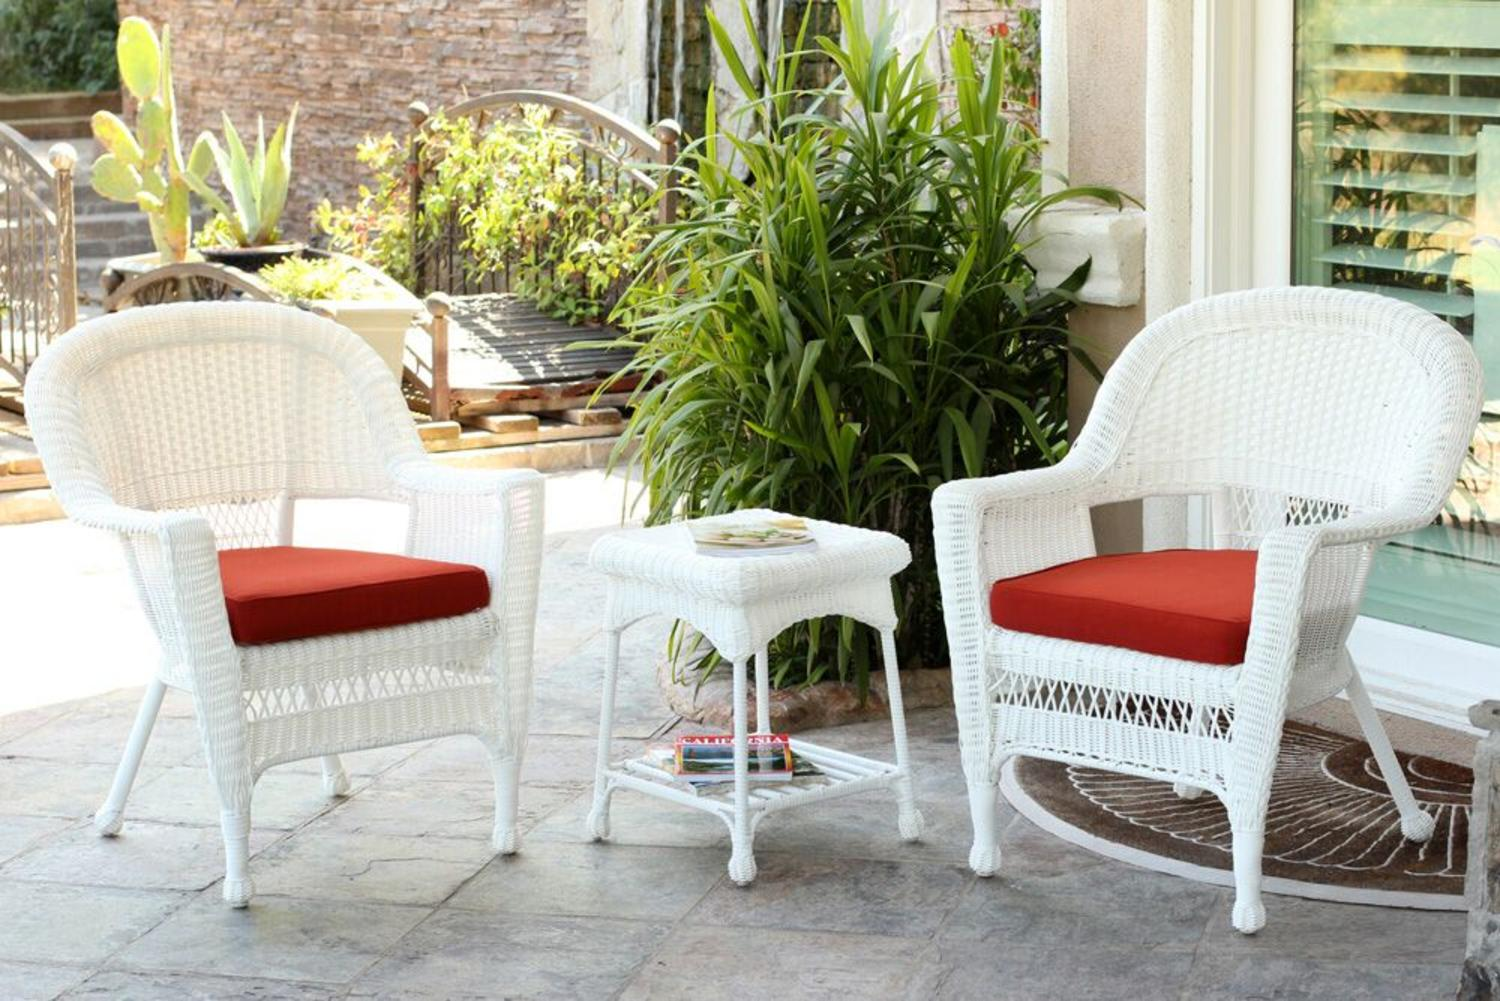 3 Piece White Resin Wicker Patio Chairs And End Table Furniture Set   Red  Cushions